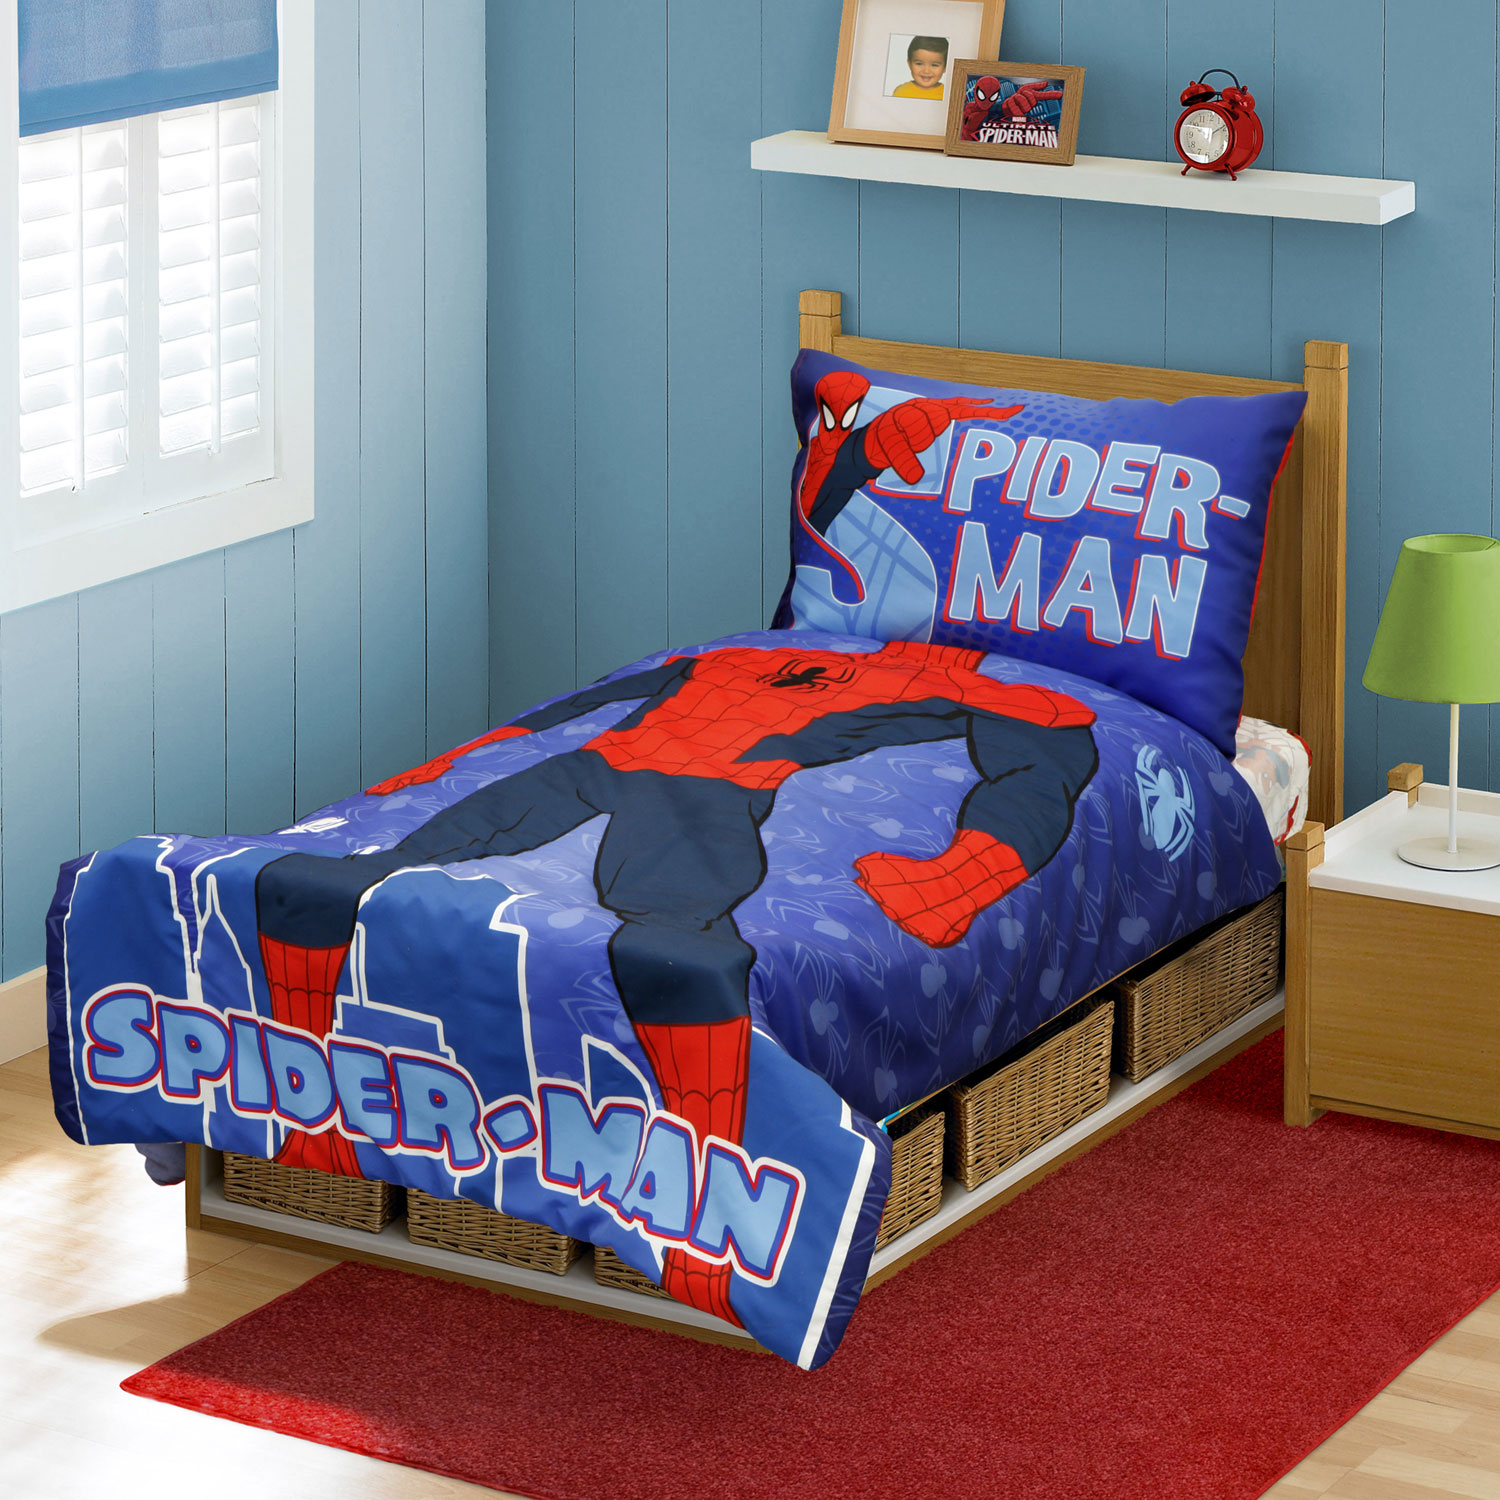 Spiderman Suit Toddler Bedding Marvel Hero Comforter Sheets Smd11489 SMD11489